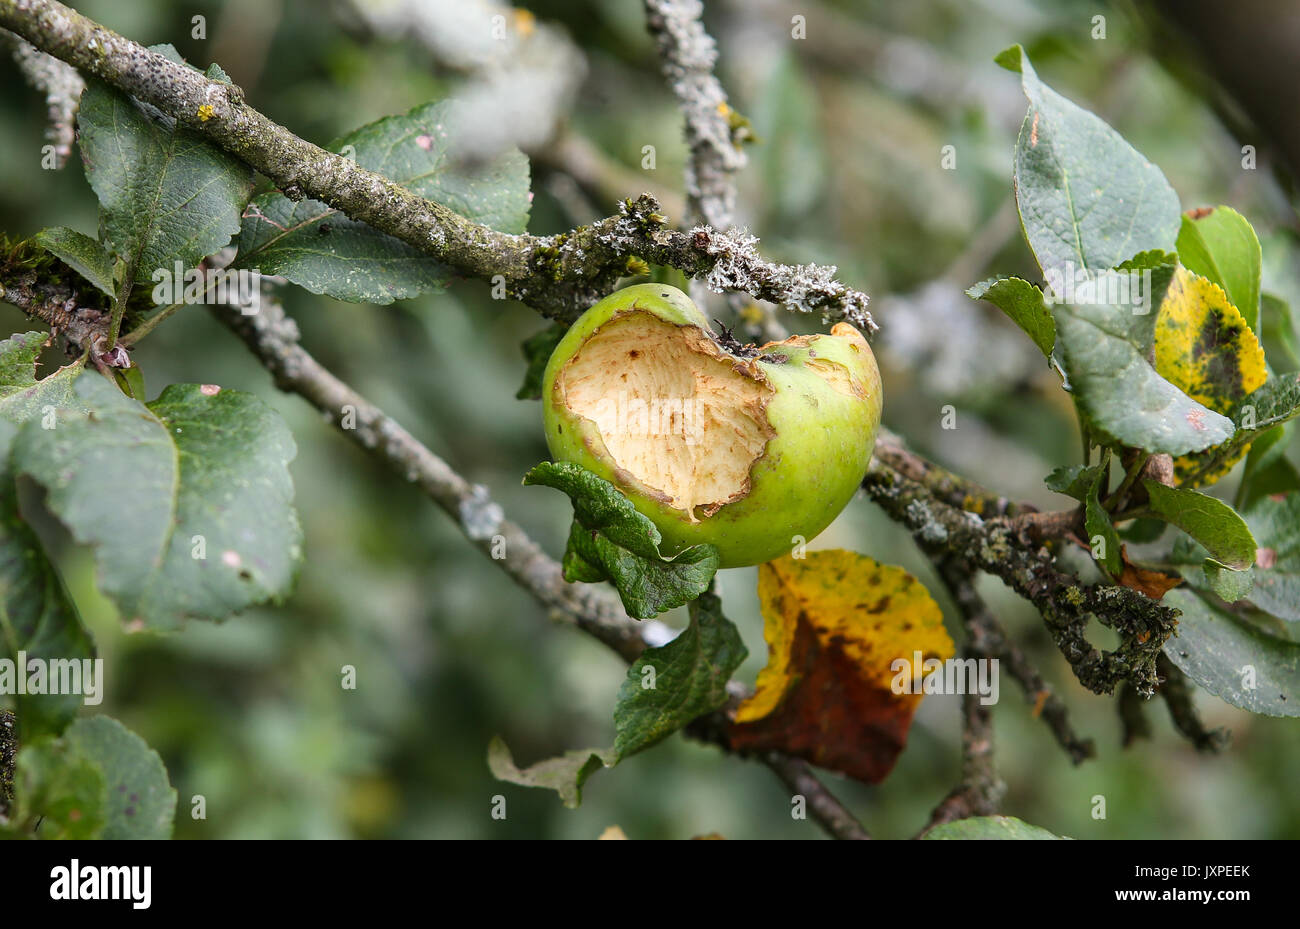 Rotten Crab Apples (Malus Sylvestris) in High Wycombe, England on 16 August 2017. Photo by Andy Rowland. - Stock Image